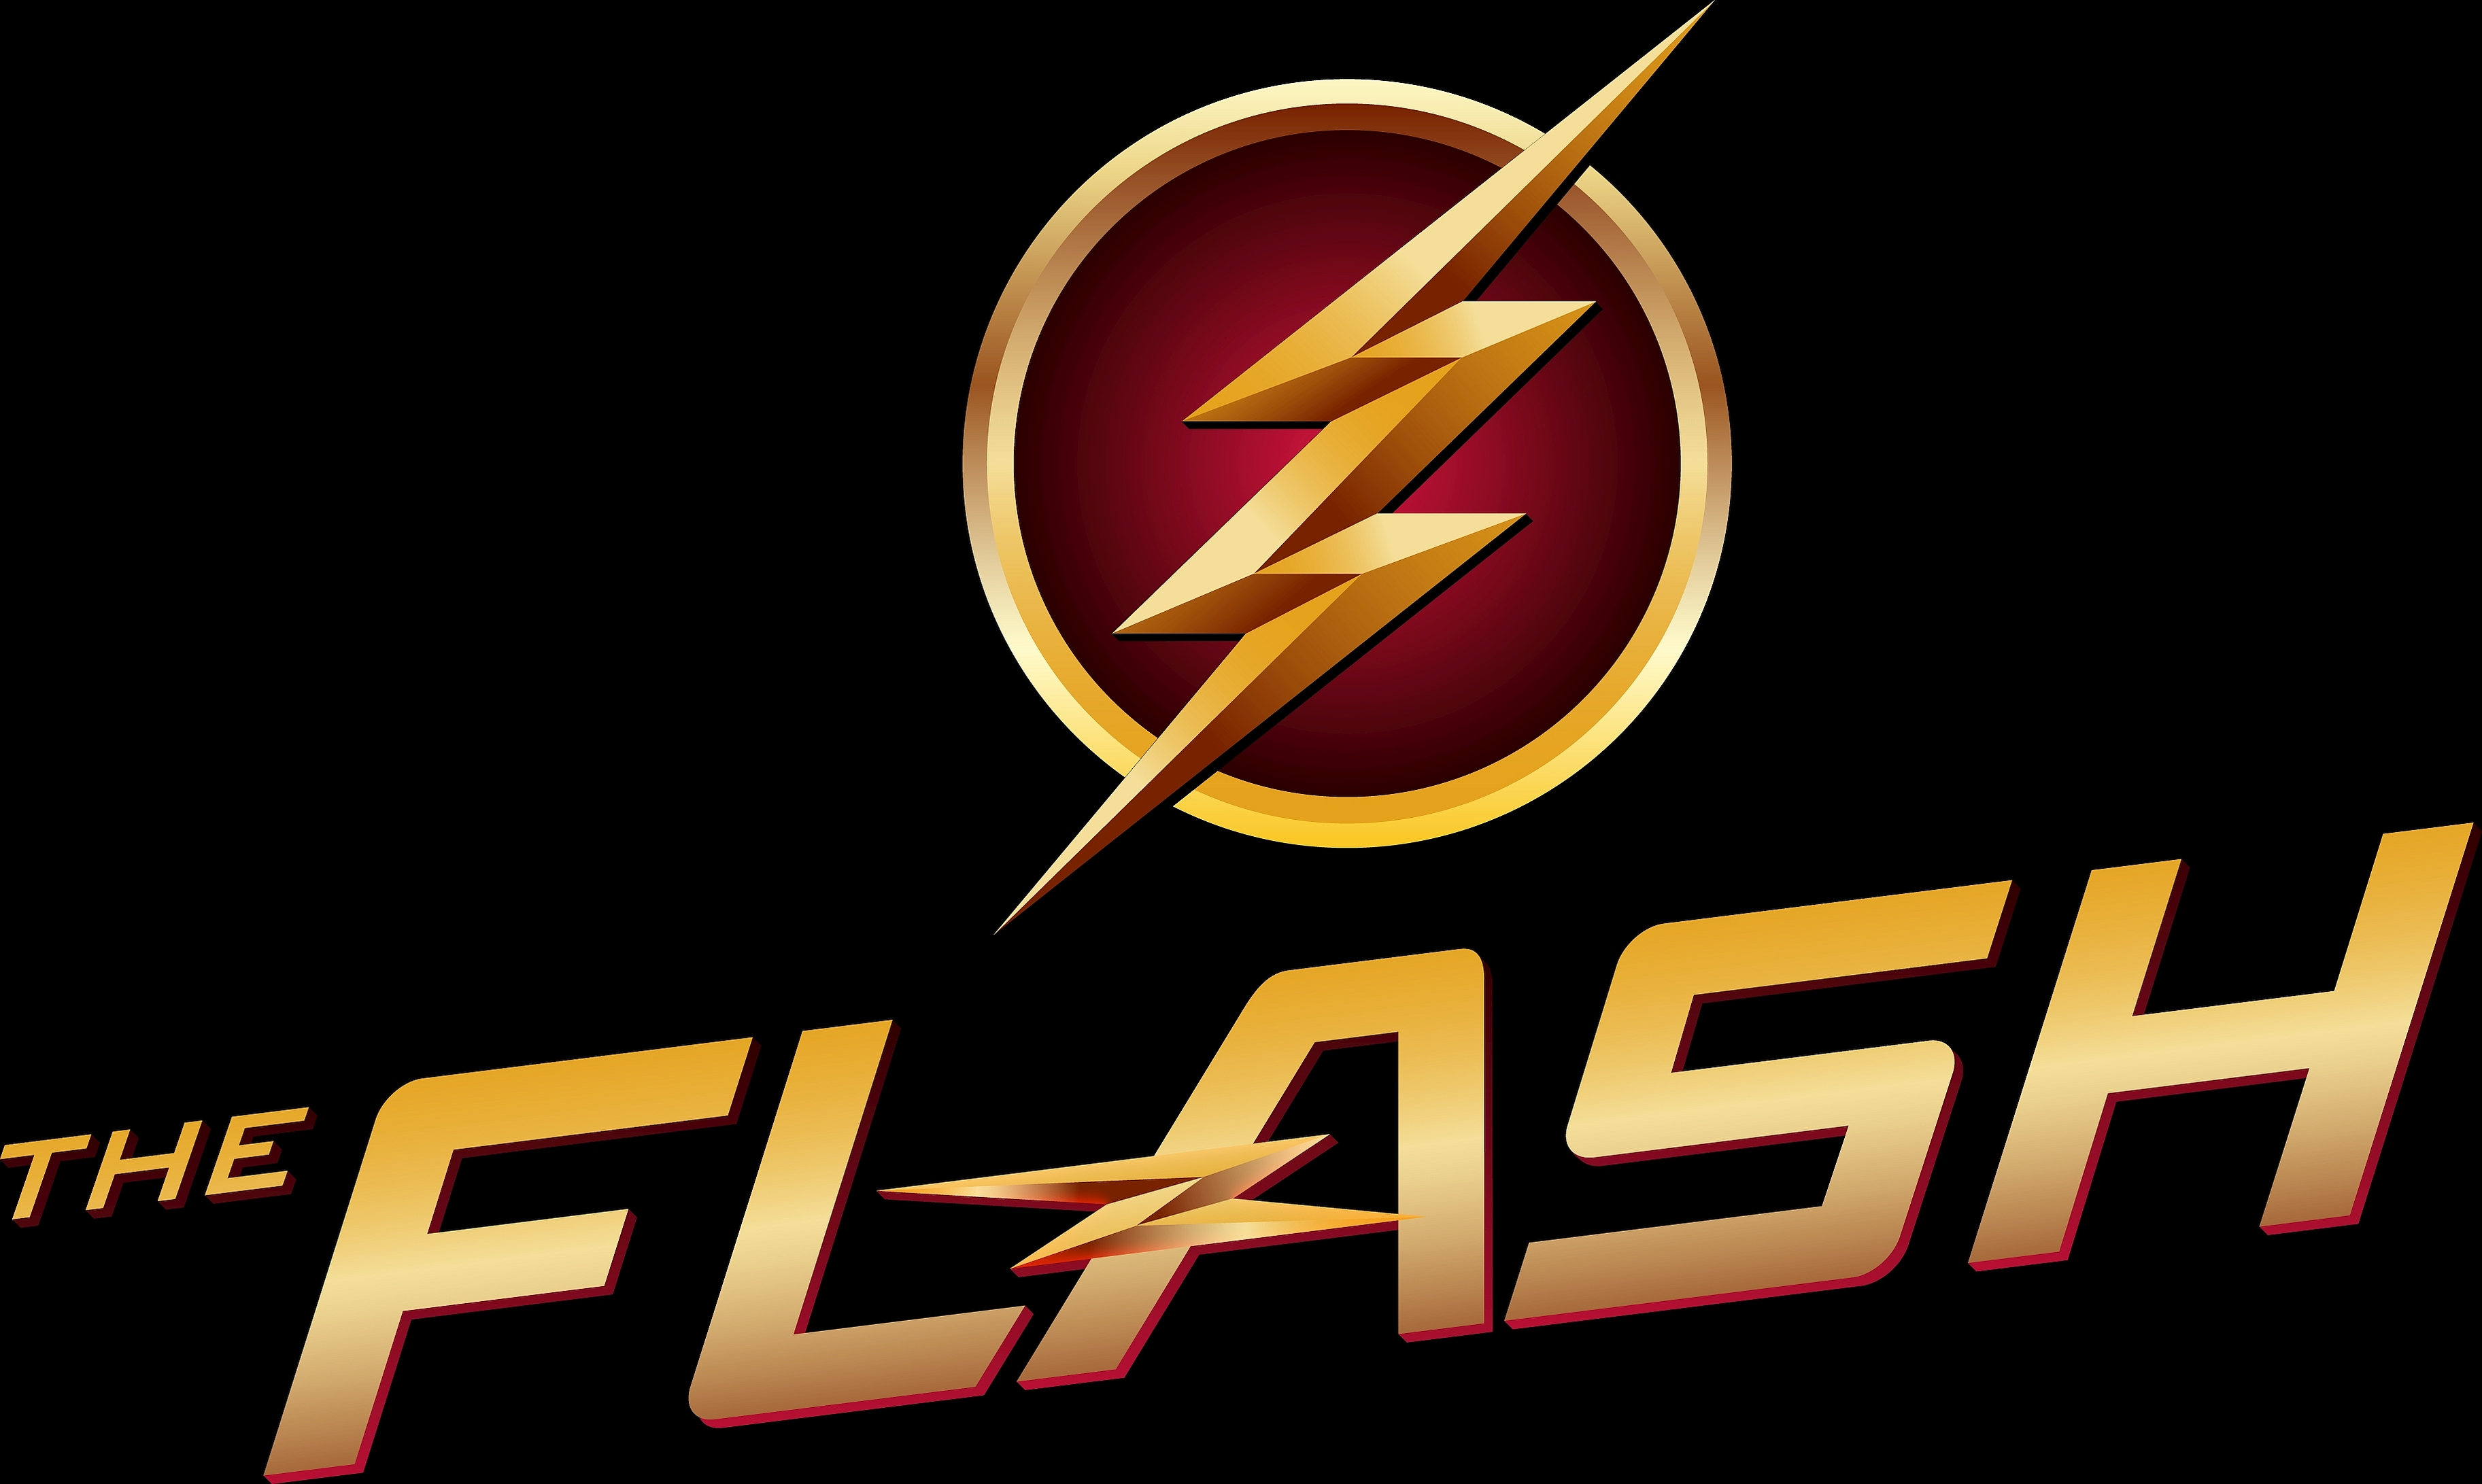 The Flash Iphone Wallpaper Flash Computer Wallpapers Desktop Backgrounds 3650x2183